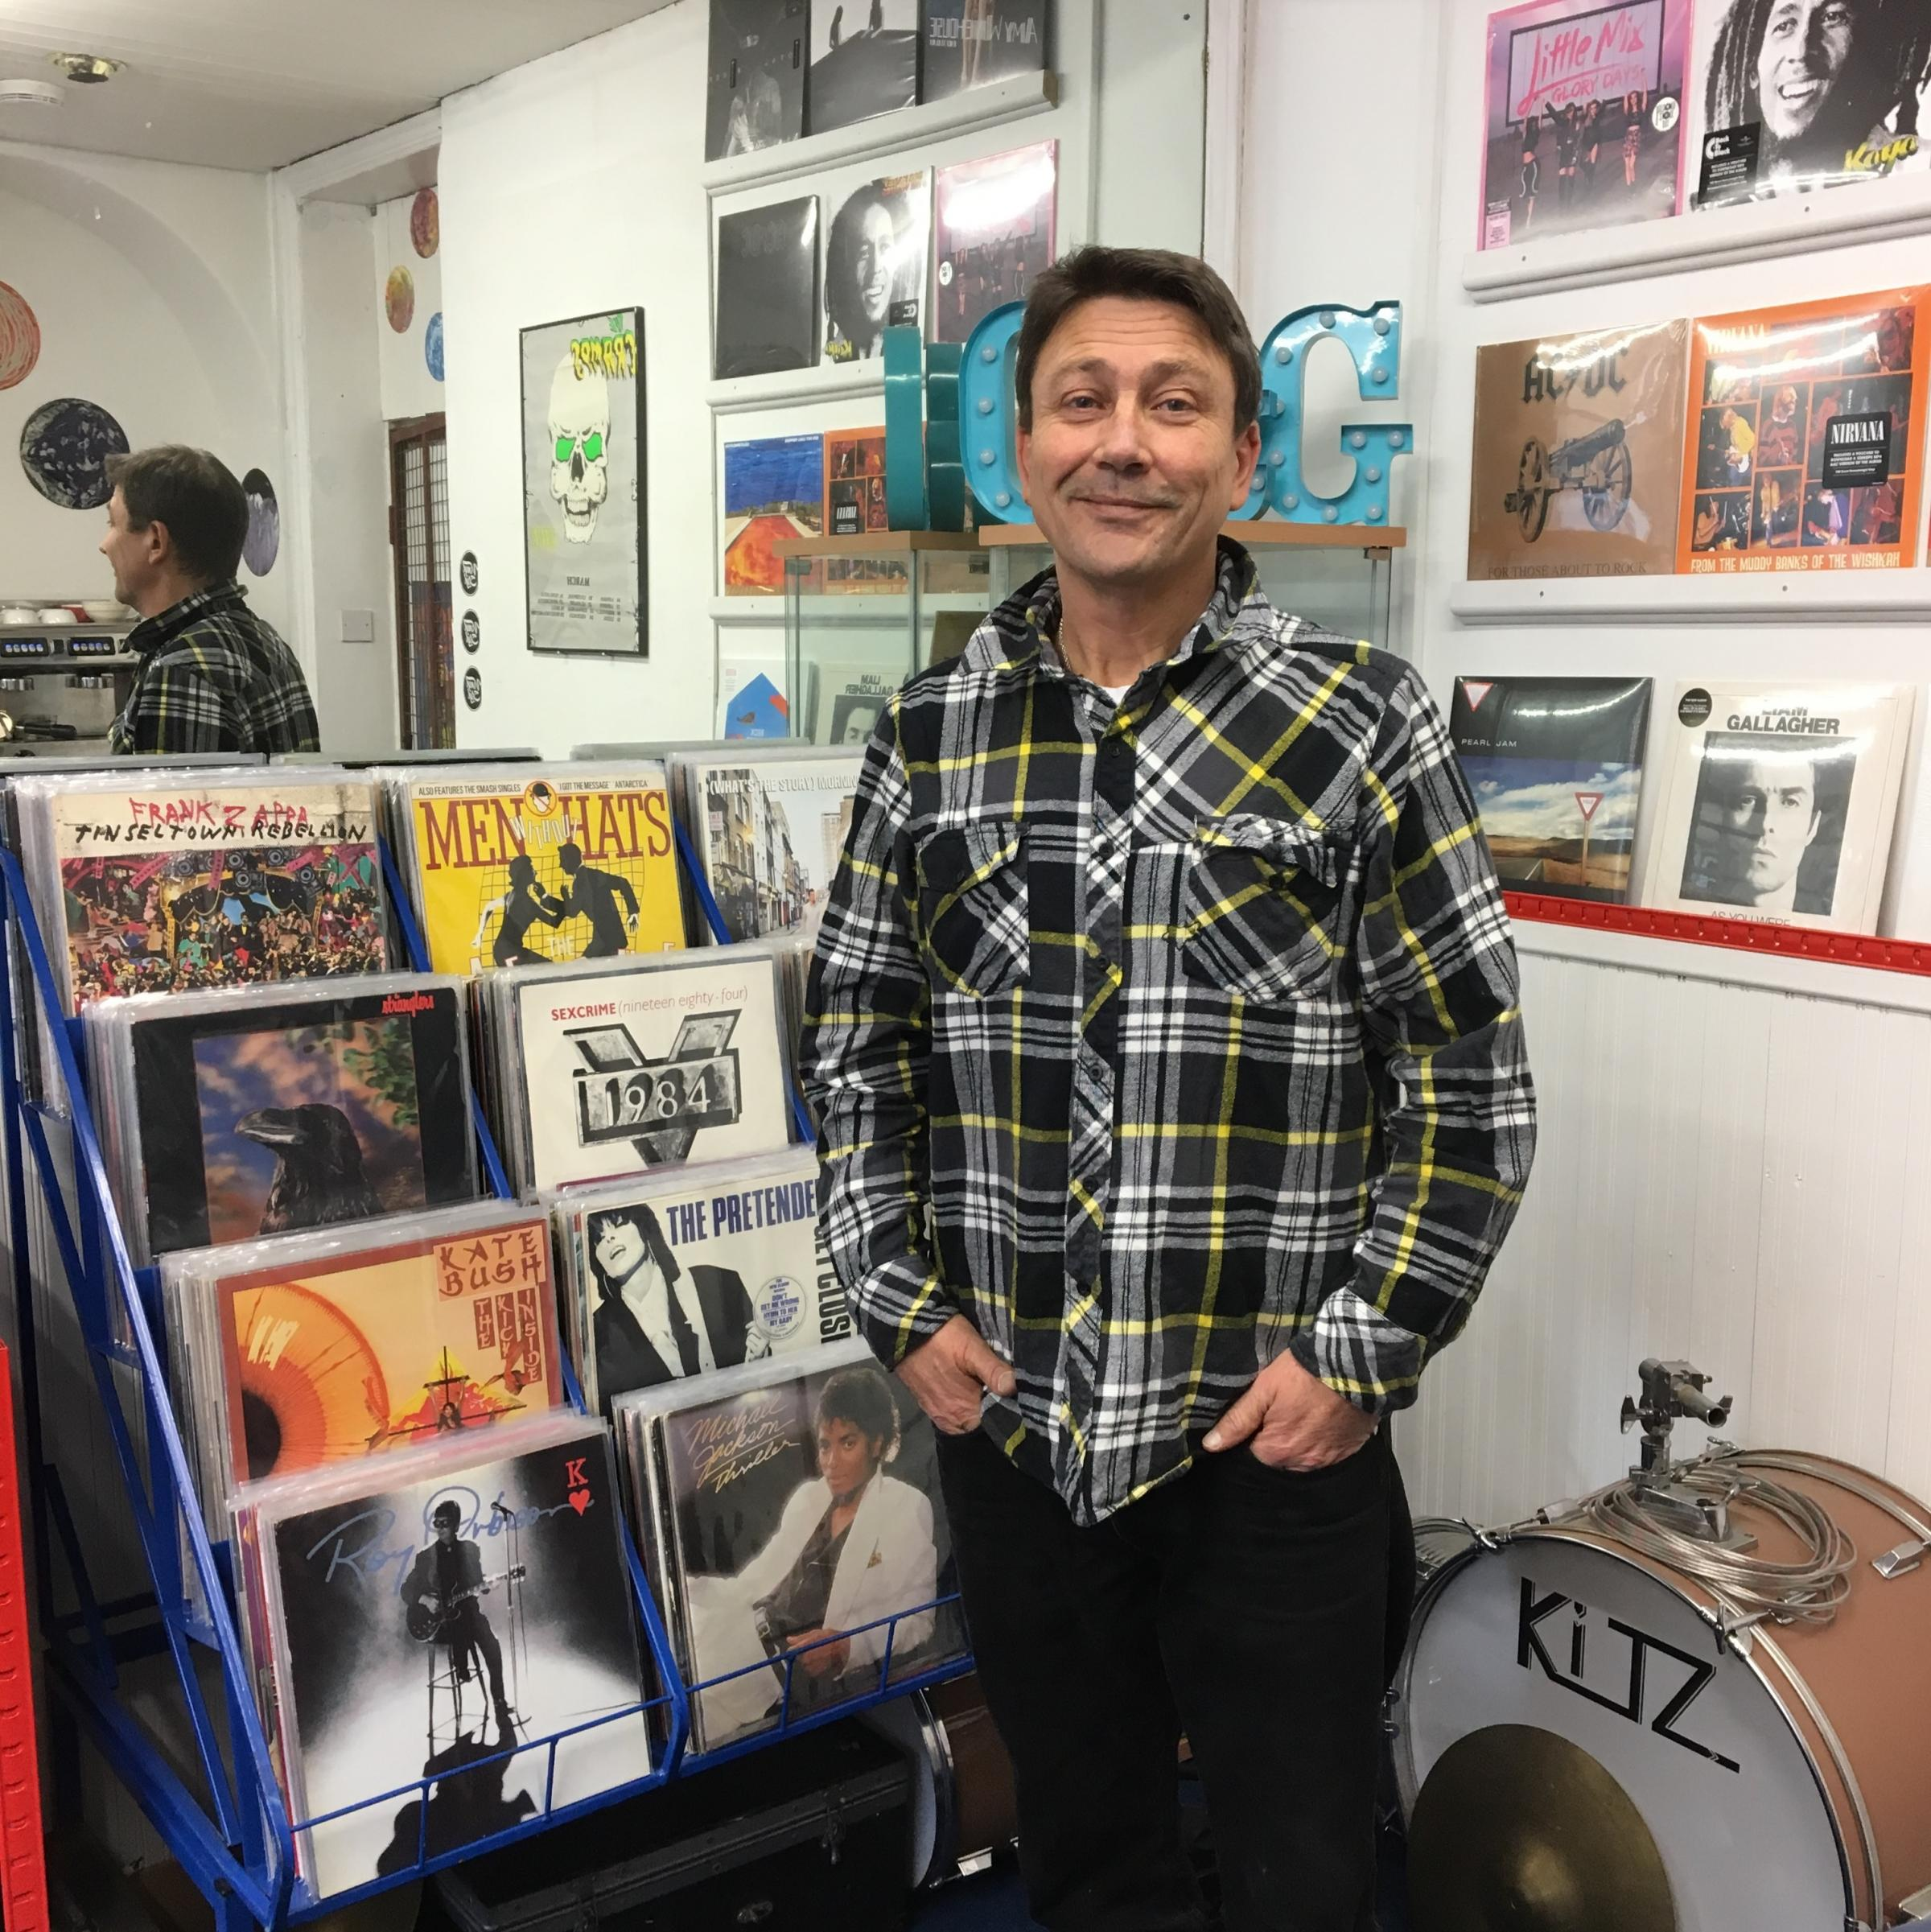 Gareth Beck is having early success with his new vinyl records shop Grind and Groove